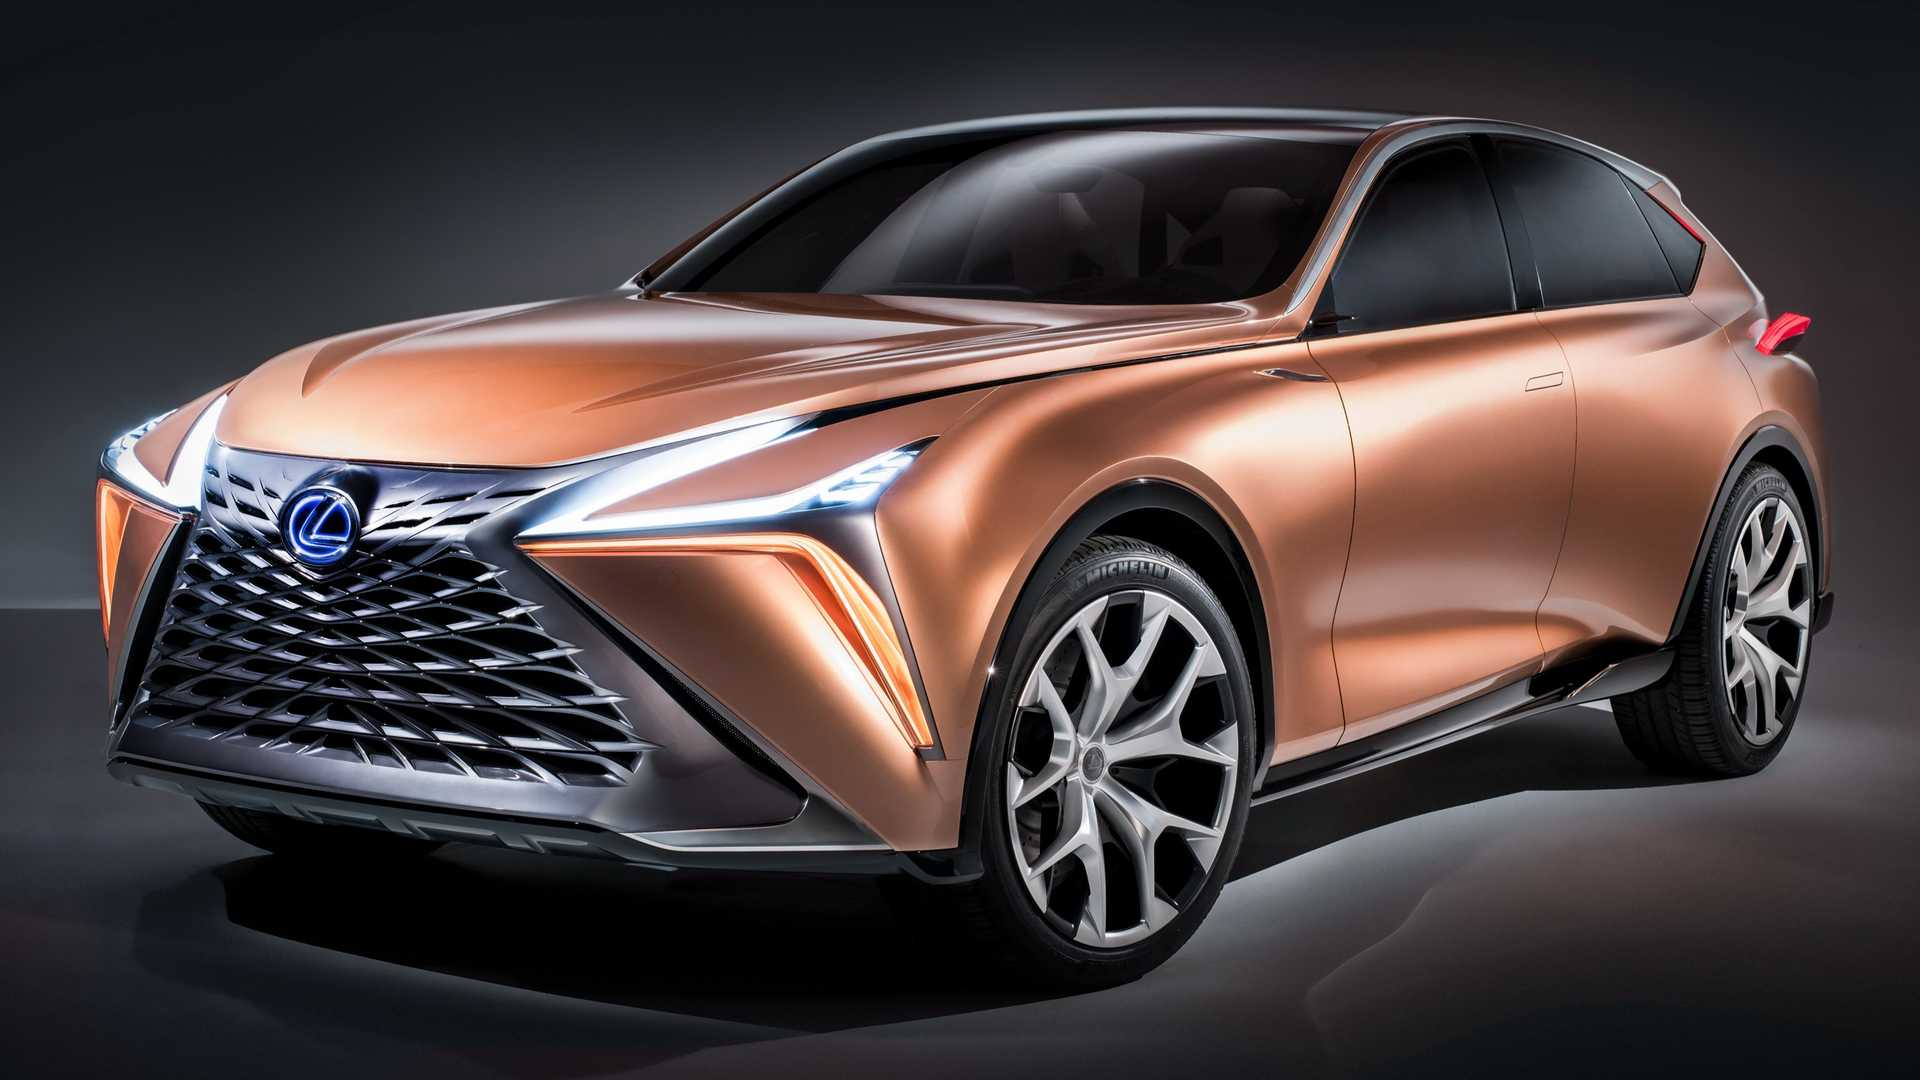 2022 Lexus Lq Flagship Suv Could Have More Than 600 Horsepower